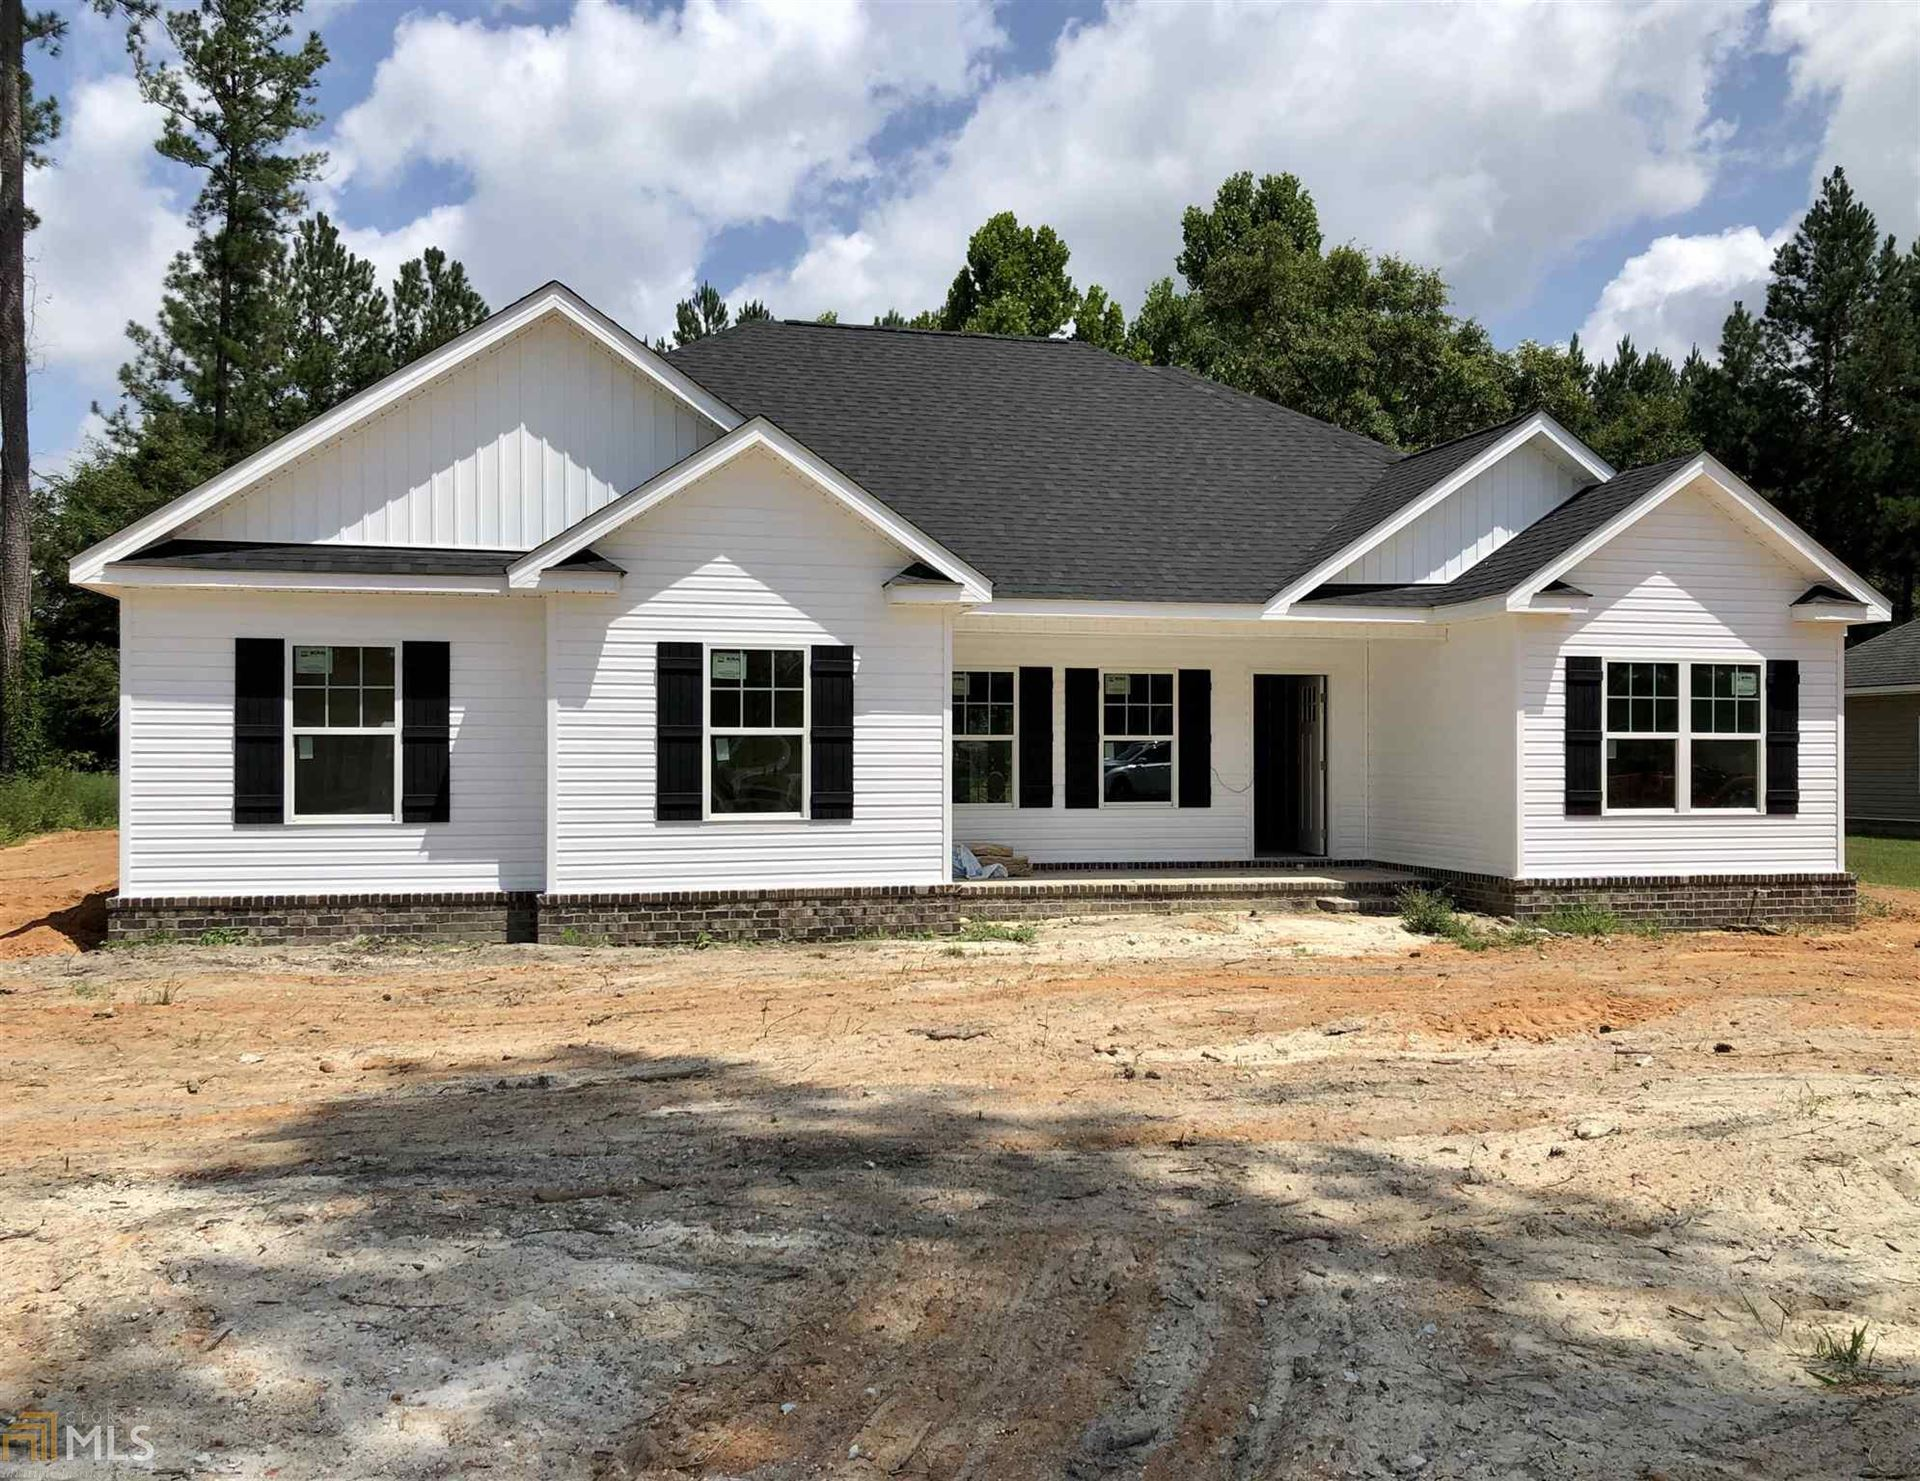 413 Serenity Ave, Brooklet, GA 30415 - #: 8811825